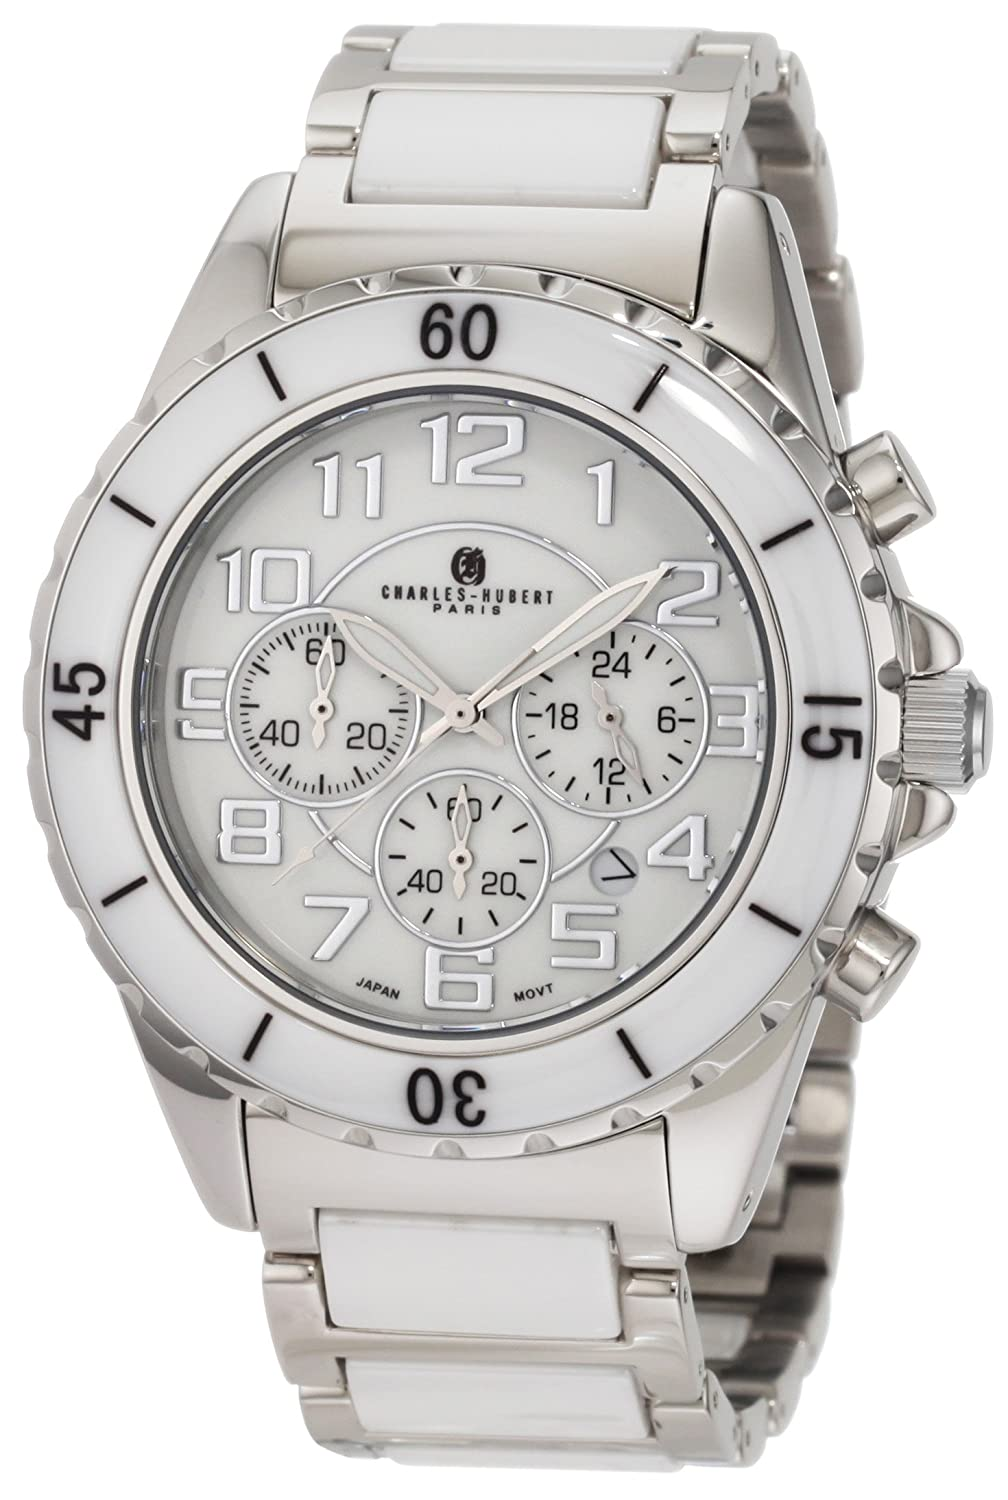 Genuine Ceramic and Stainless Steel Chronograph Quartz Armbanduhr